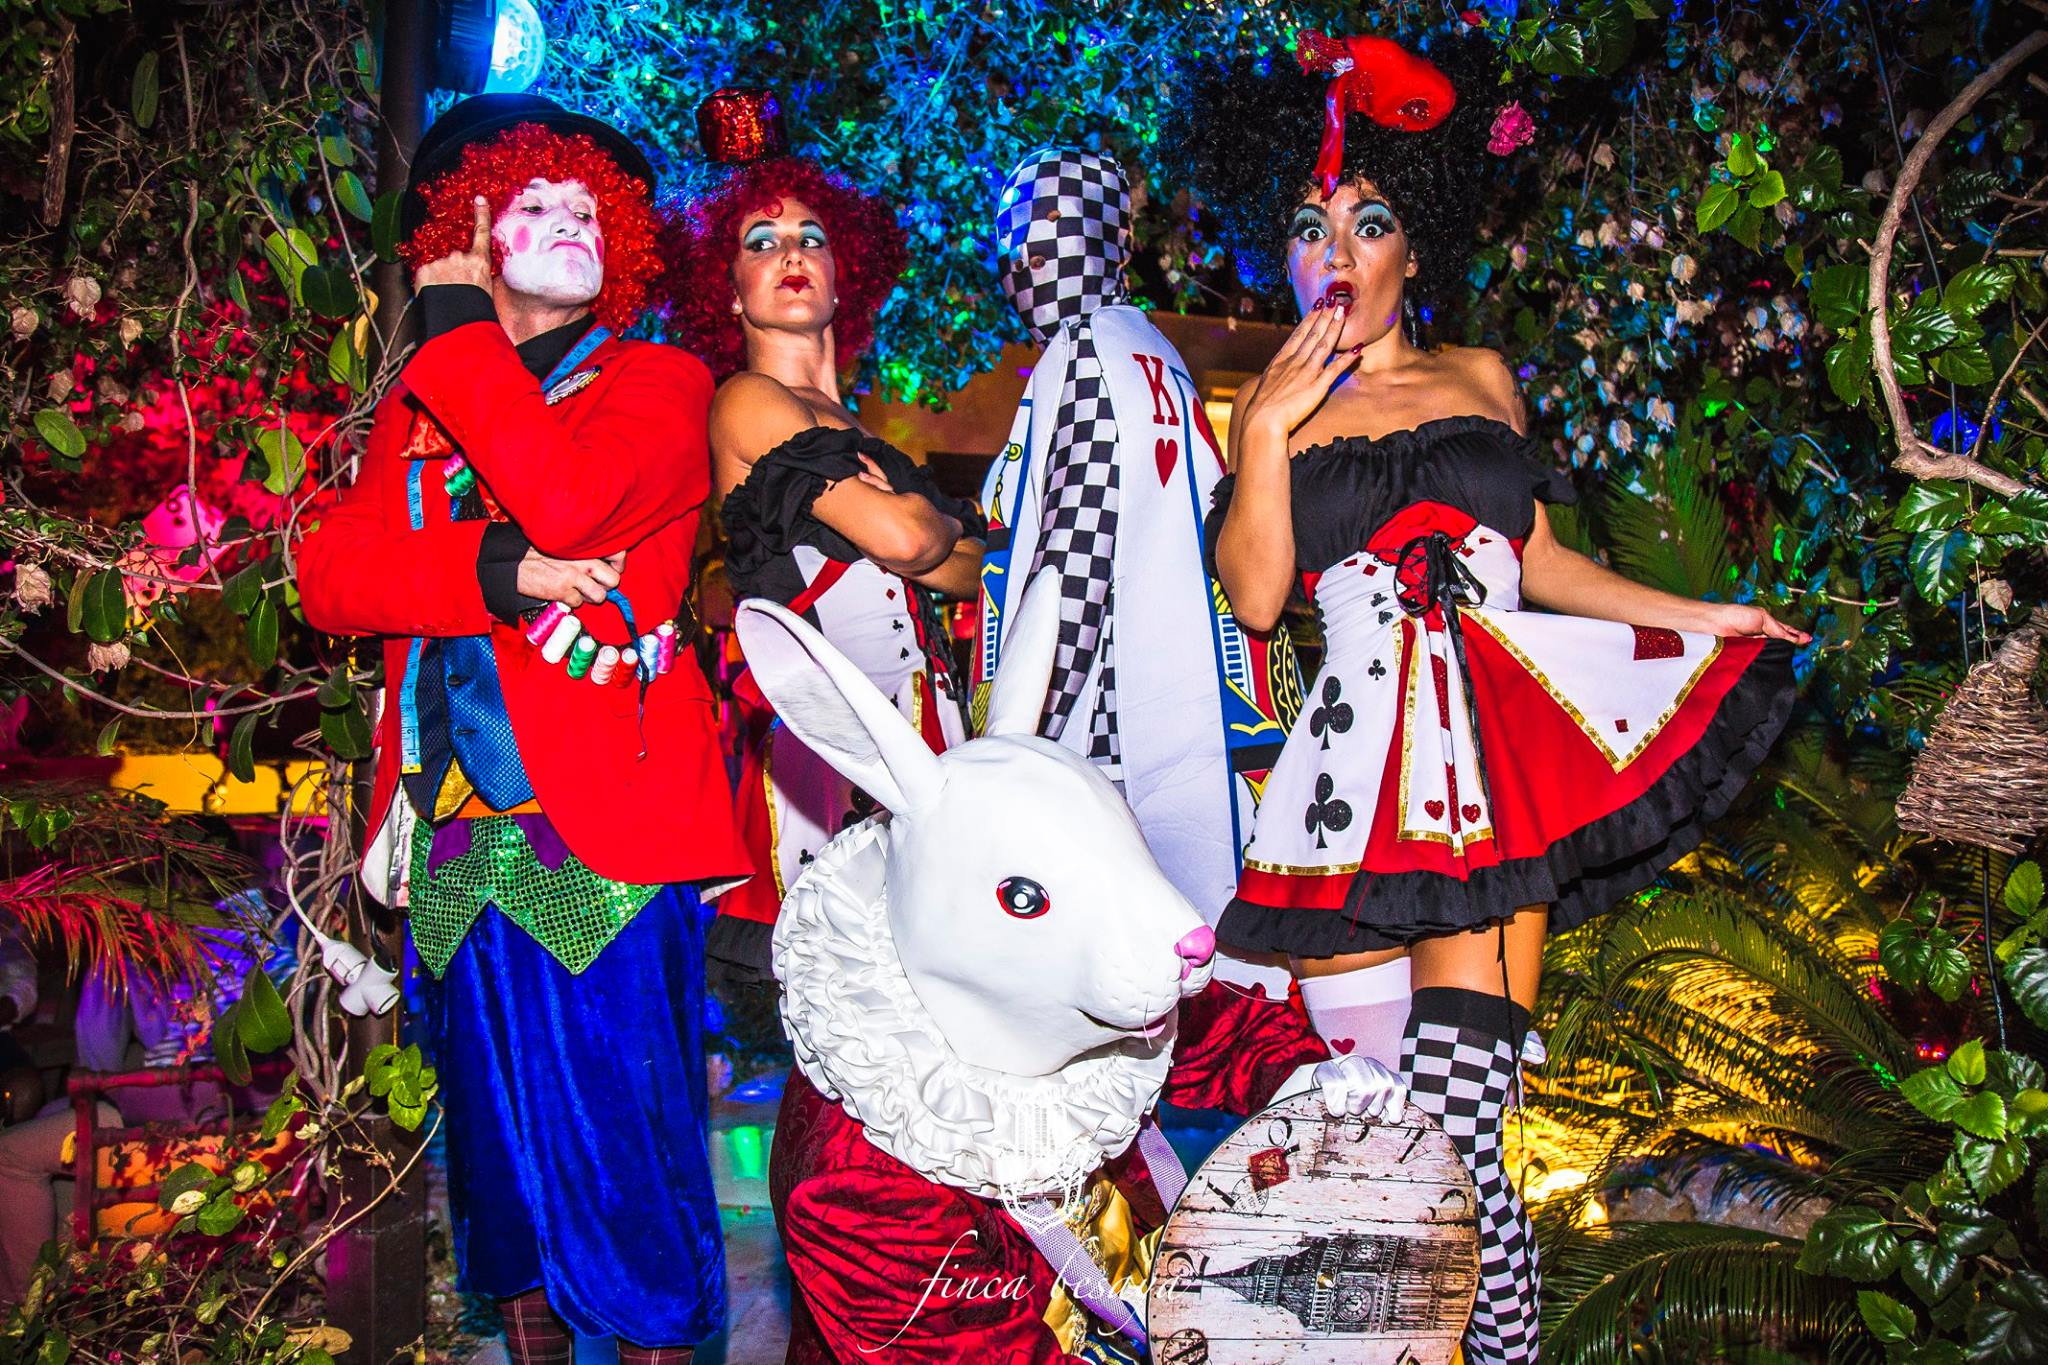 Alice in Wonderland crew